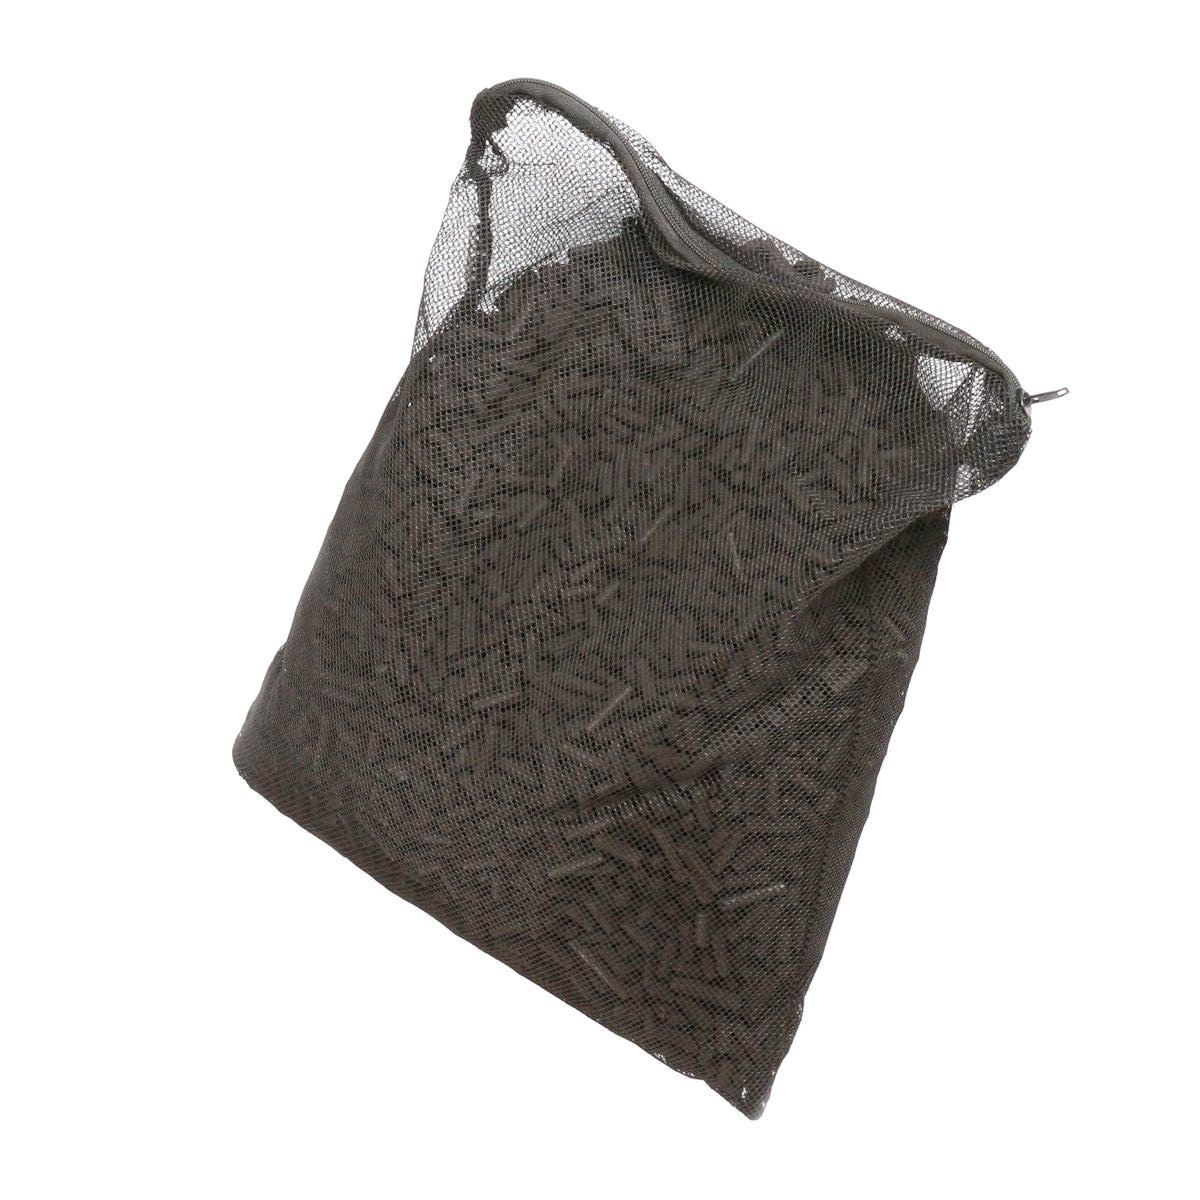 55 Lbs Activated Carbon Charcoal in 11 Media Bags for Aquarium Fish Tank Koi Pond Filter (5lbs X 11)